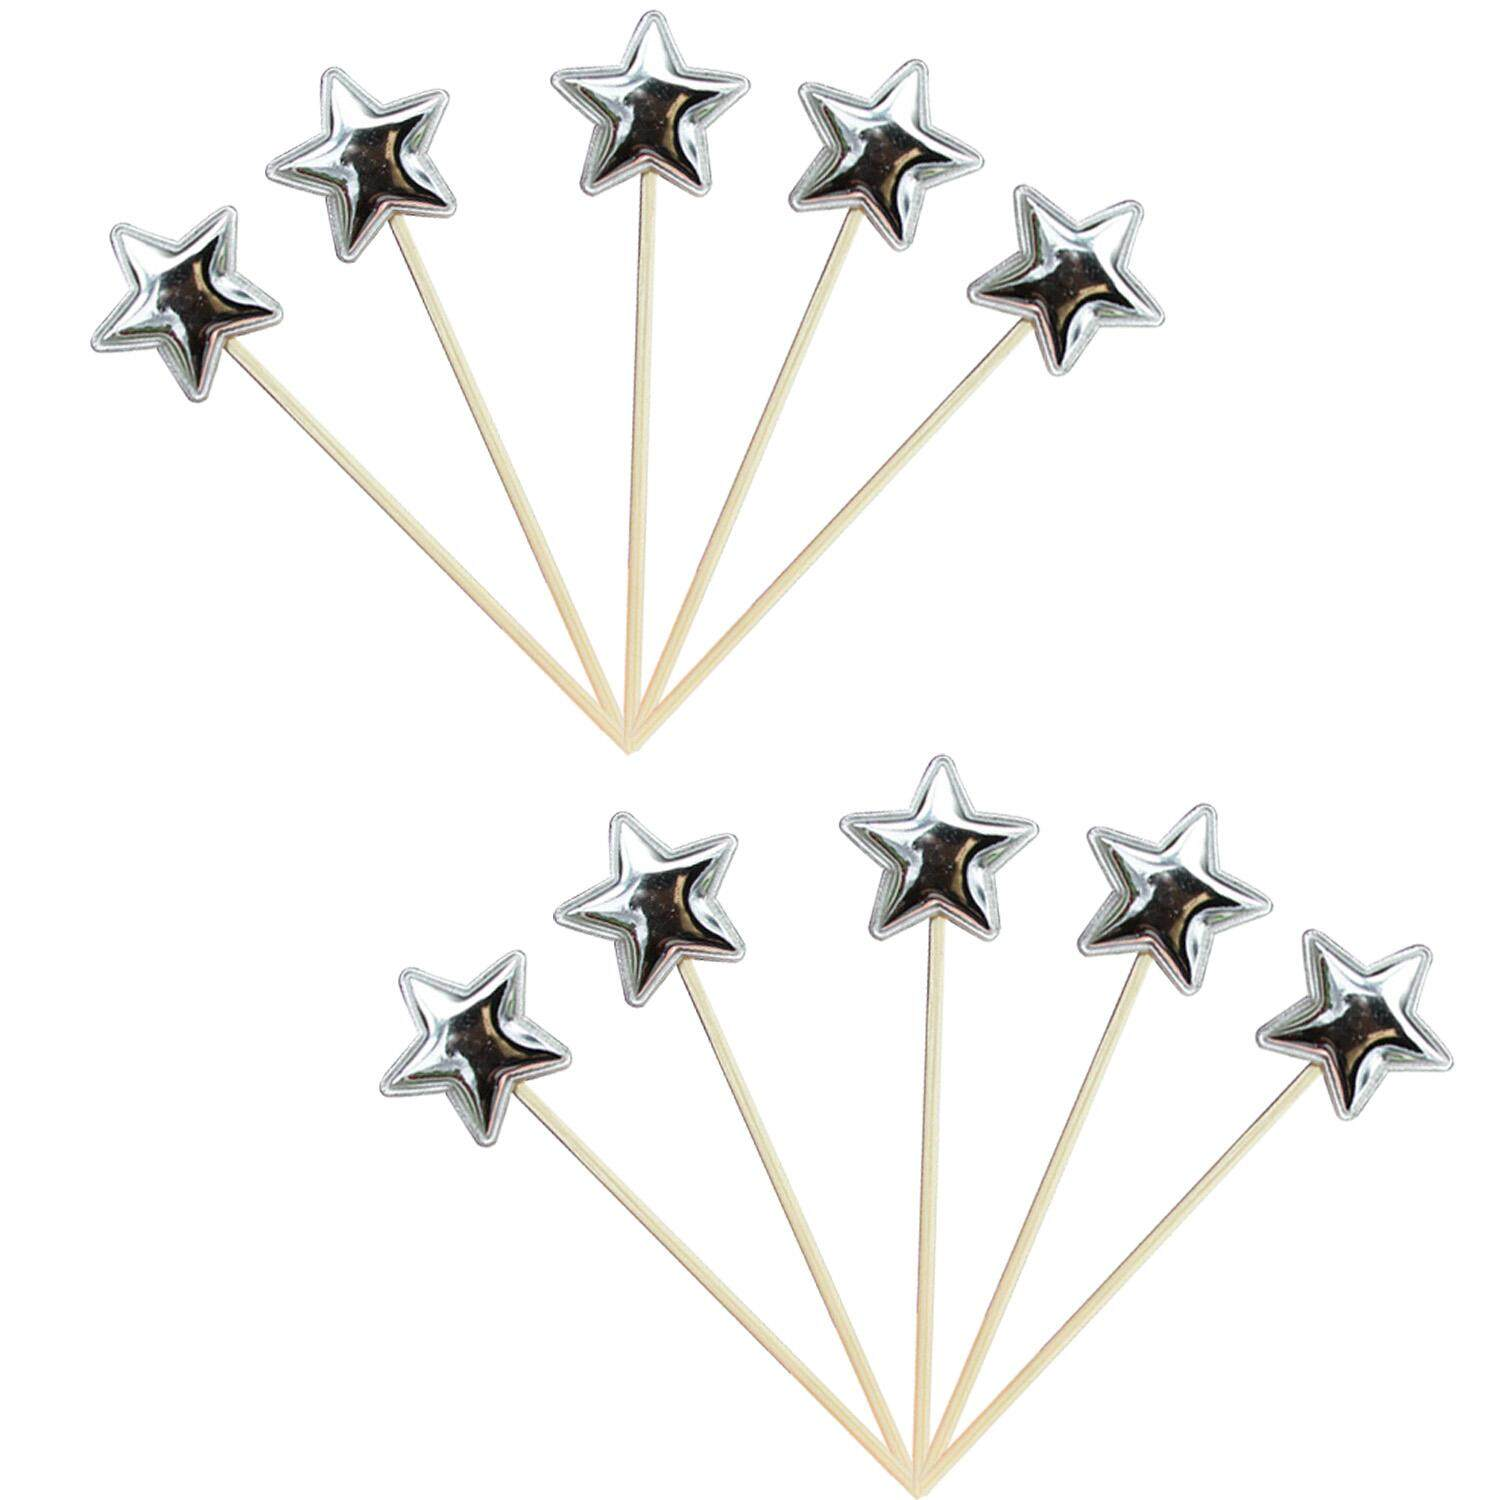 10pcs Lovely Star Shape Cake Topper Picks Birthday Cupcake Snacks Decor For Baby Shower Wedding Party Decoration Supplies Random Color - Intl By Stoneky.